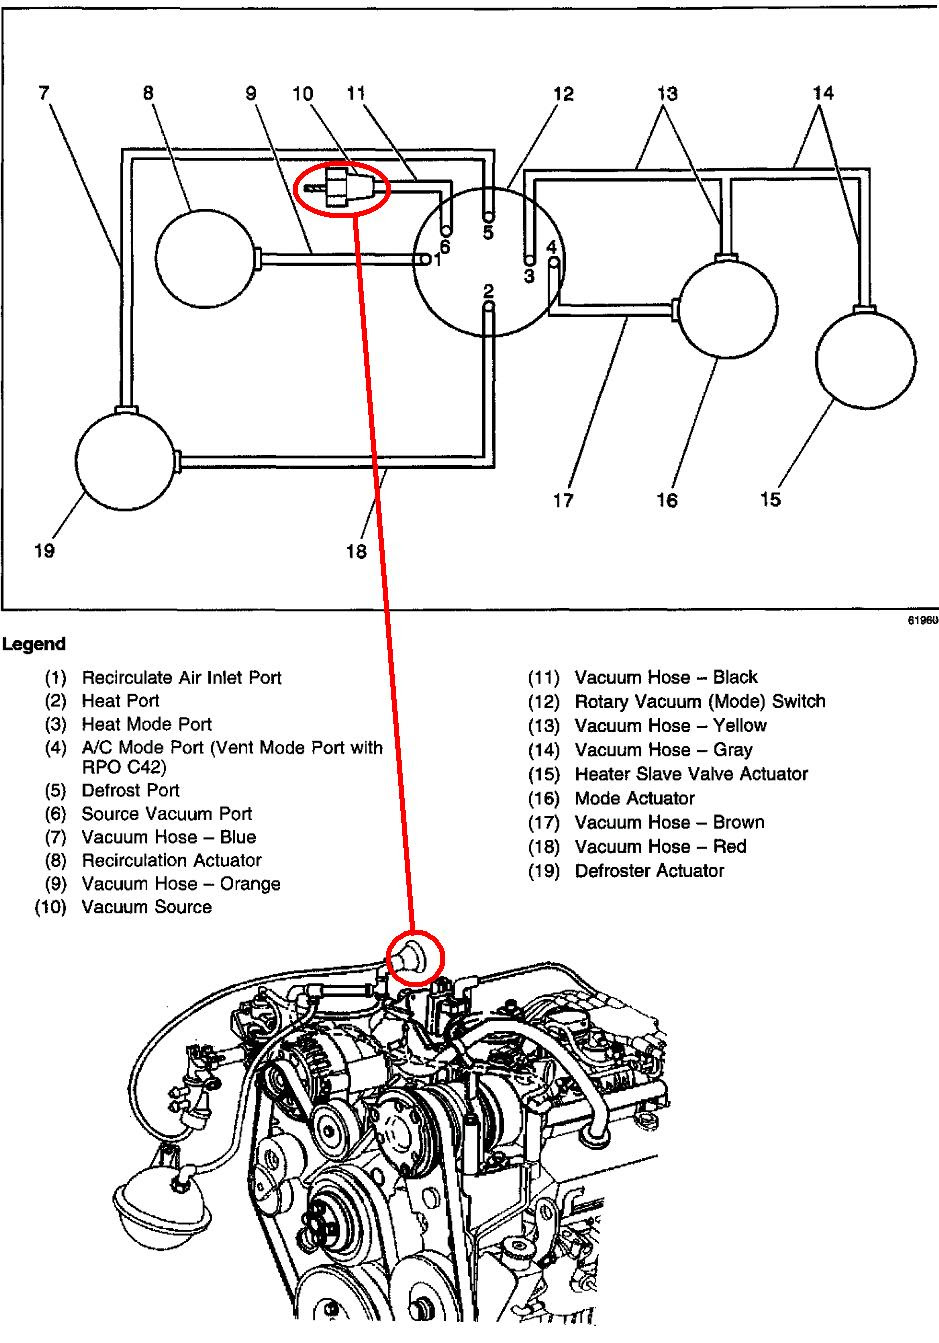 29 Chevy Astro Vacuum Line Diagram